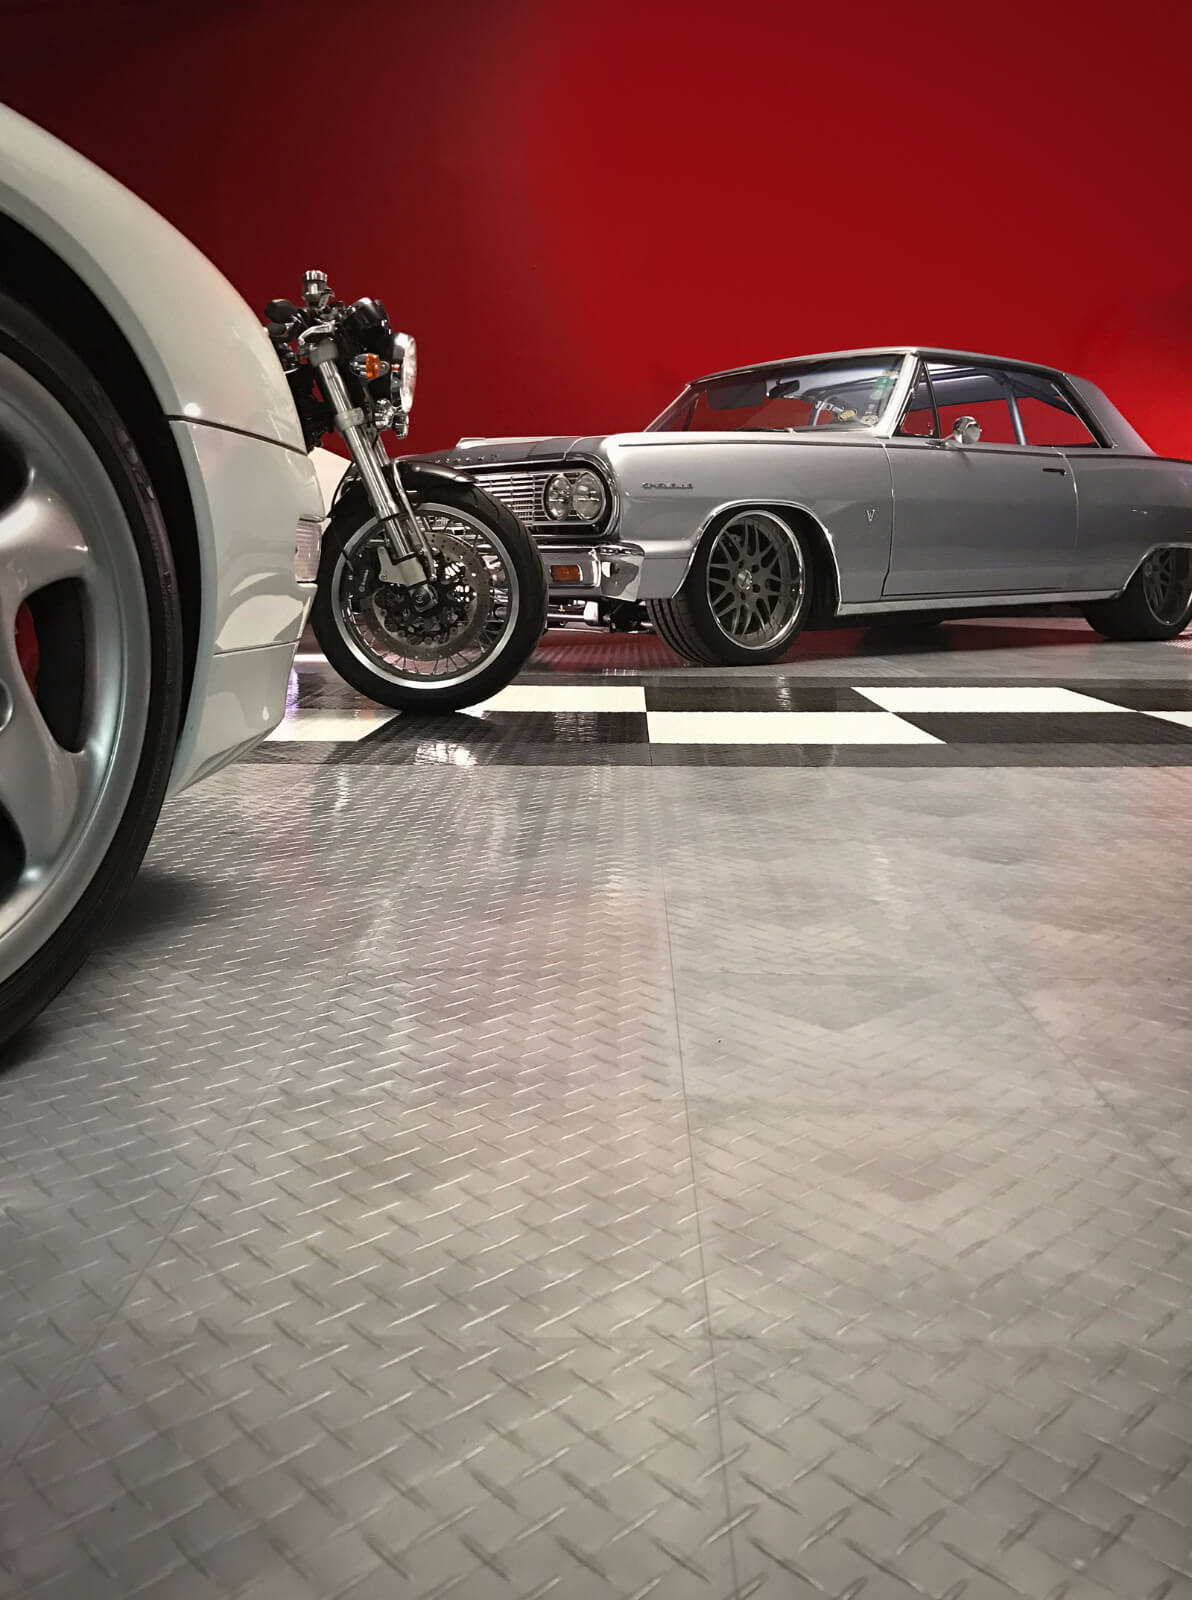 RaceDeck Speed Garage vehicle display using RaceDeck Diamond flooring. Check out the Maliboost!